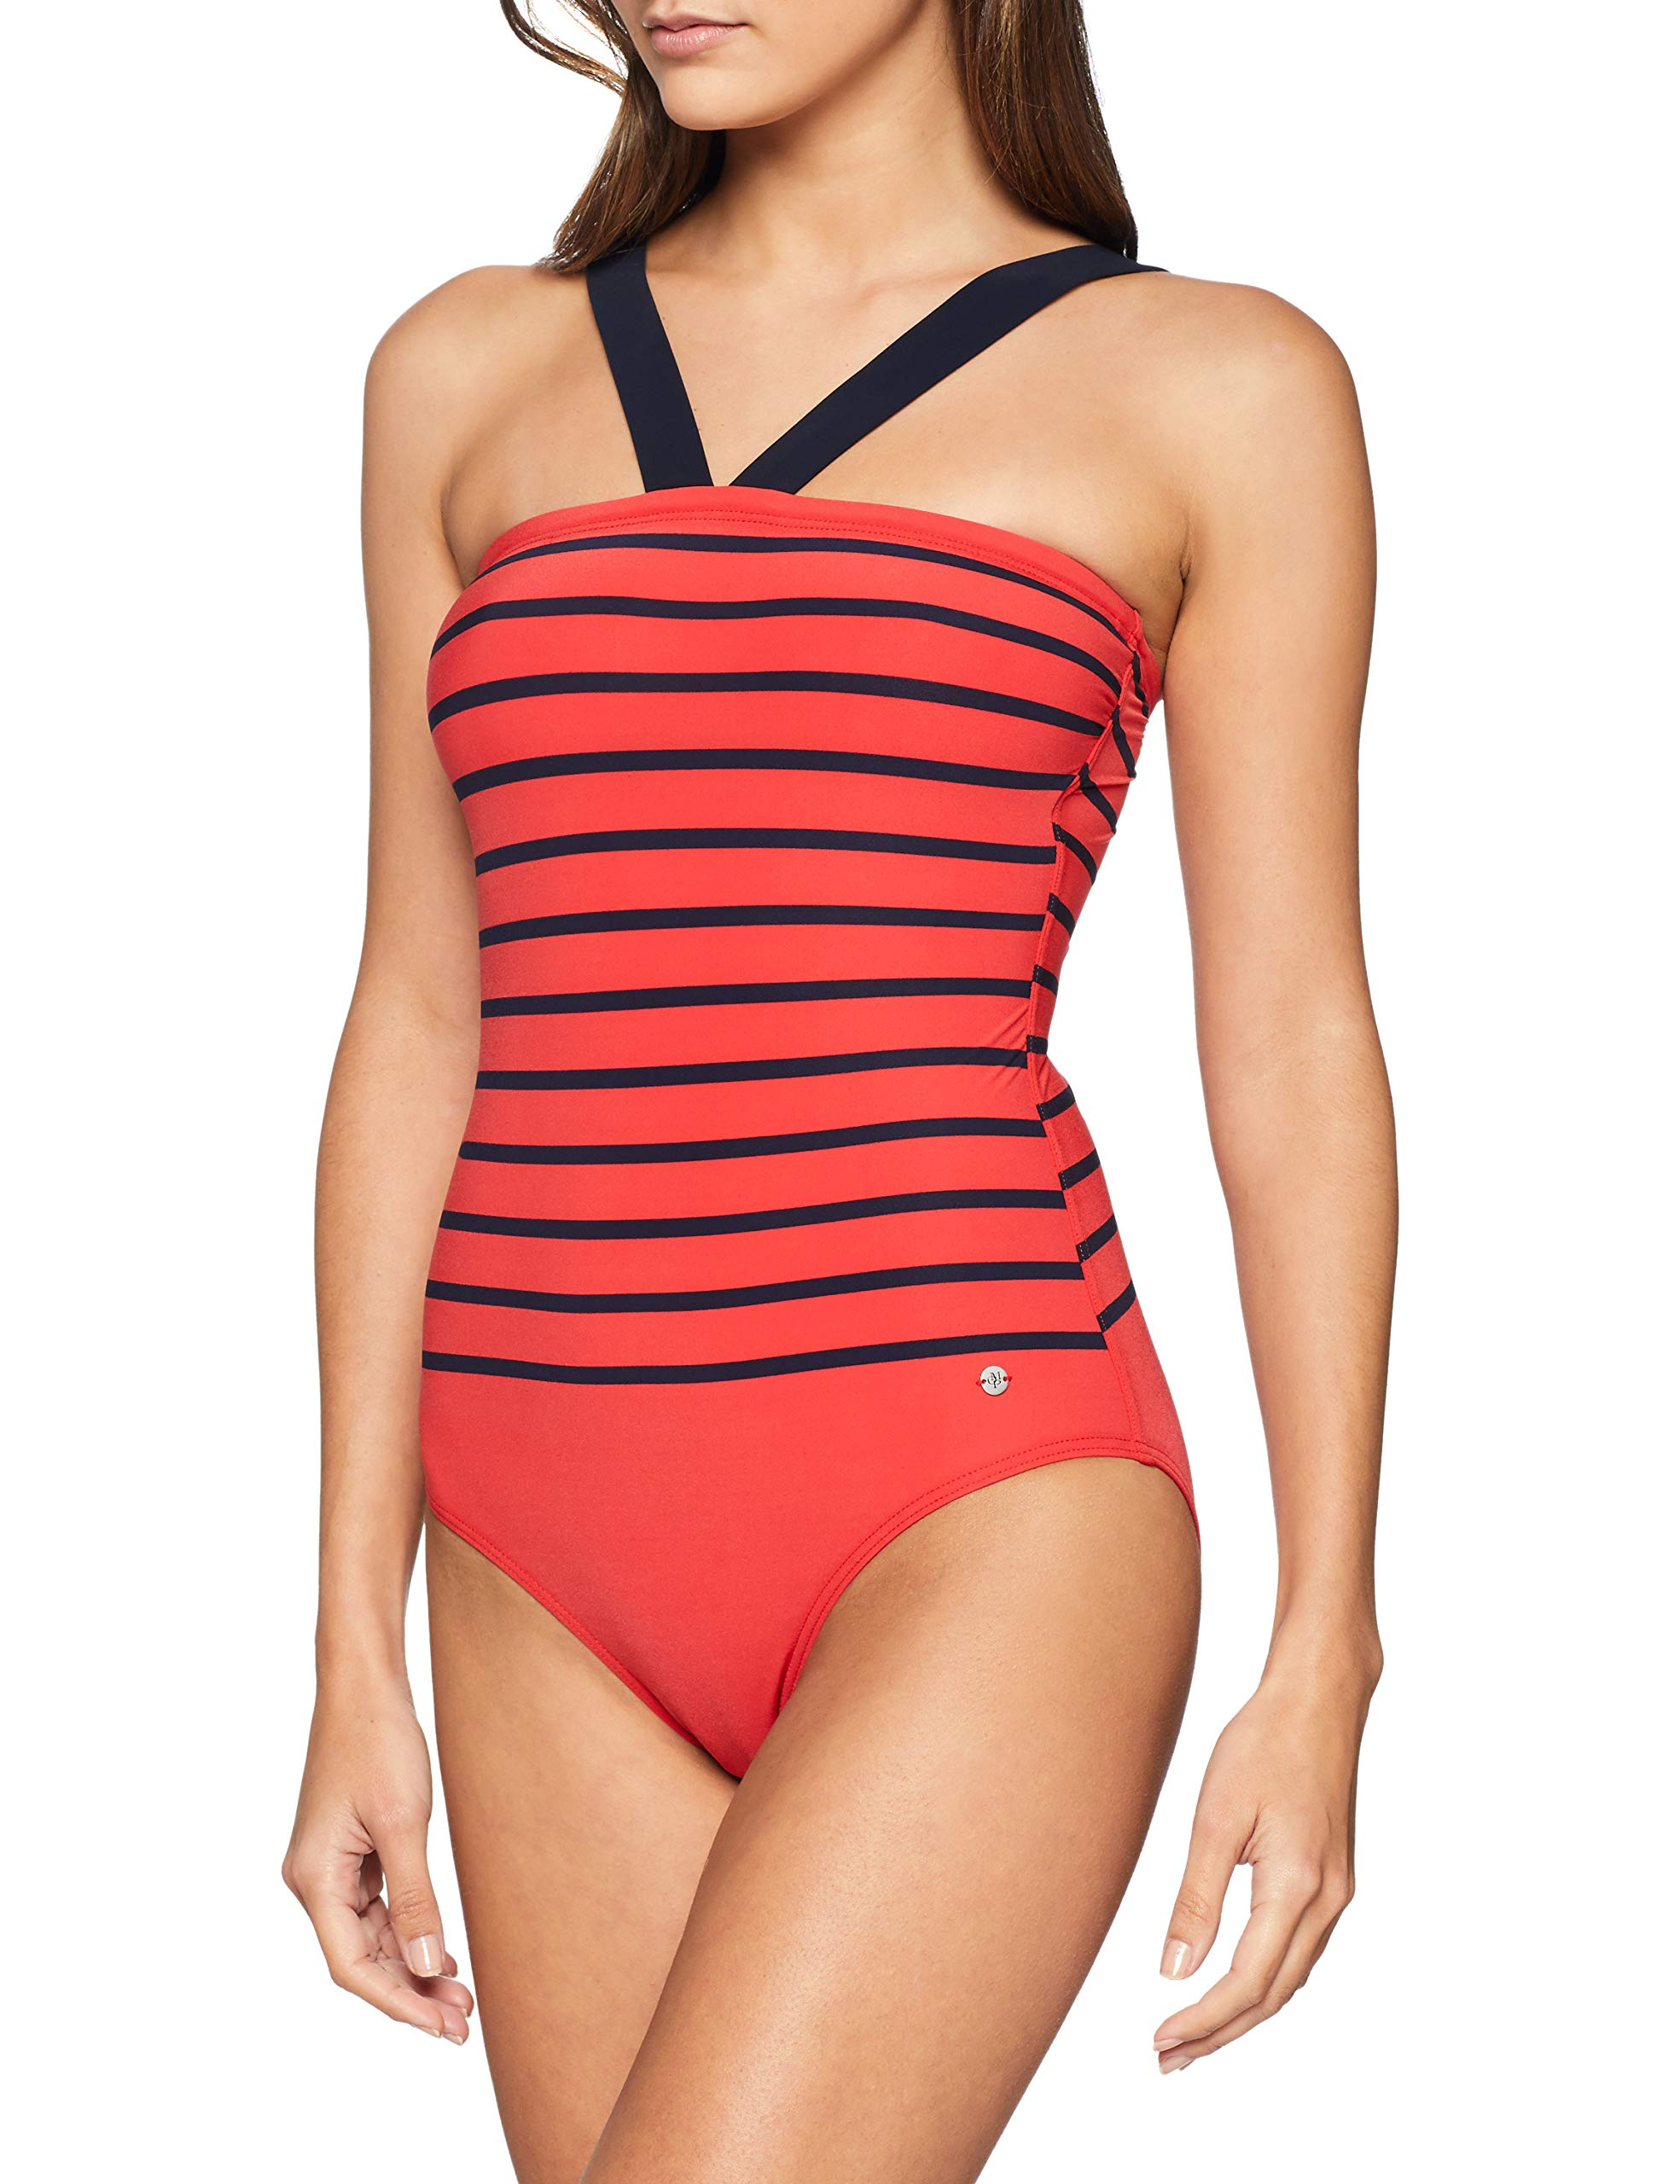 518100btaille Rot PièceRougechilli Fabricant042bFemme Beach Maillot O'polo Bodyamp; W beachsuit Une Marc xBoeQrdWC